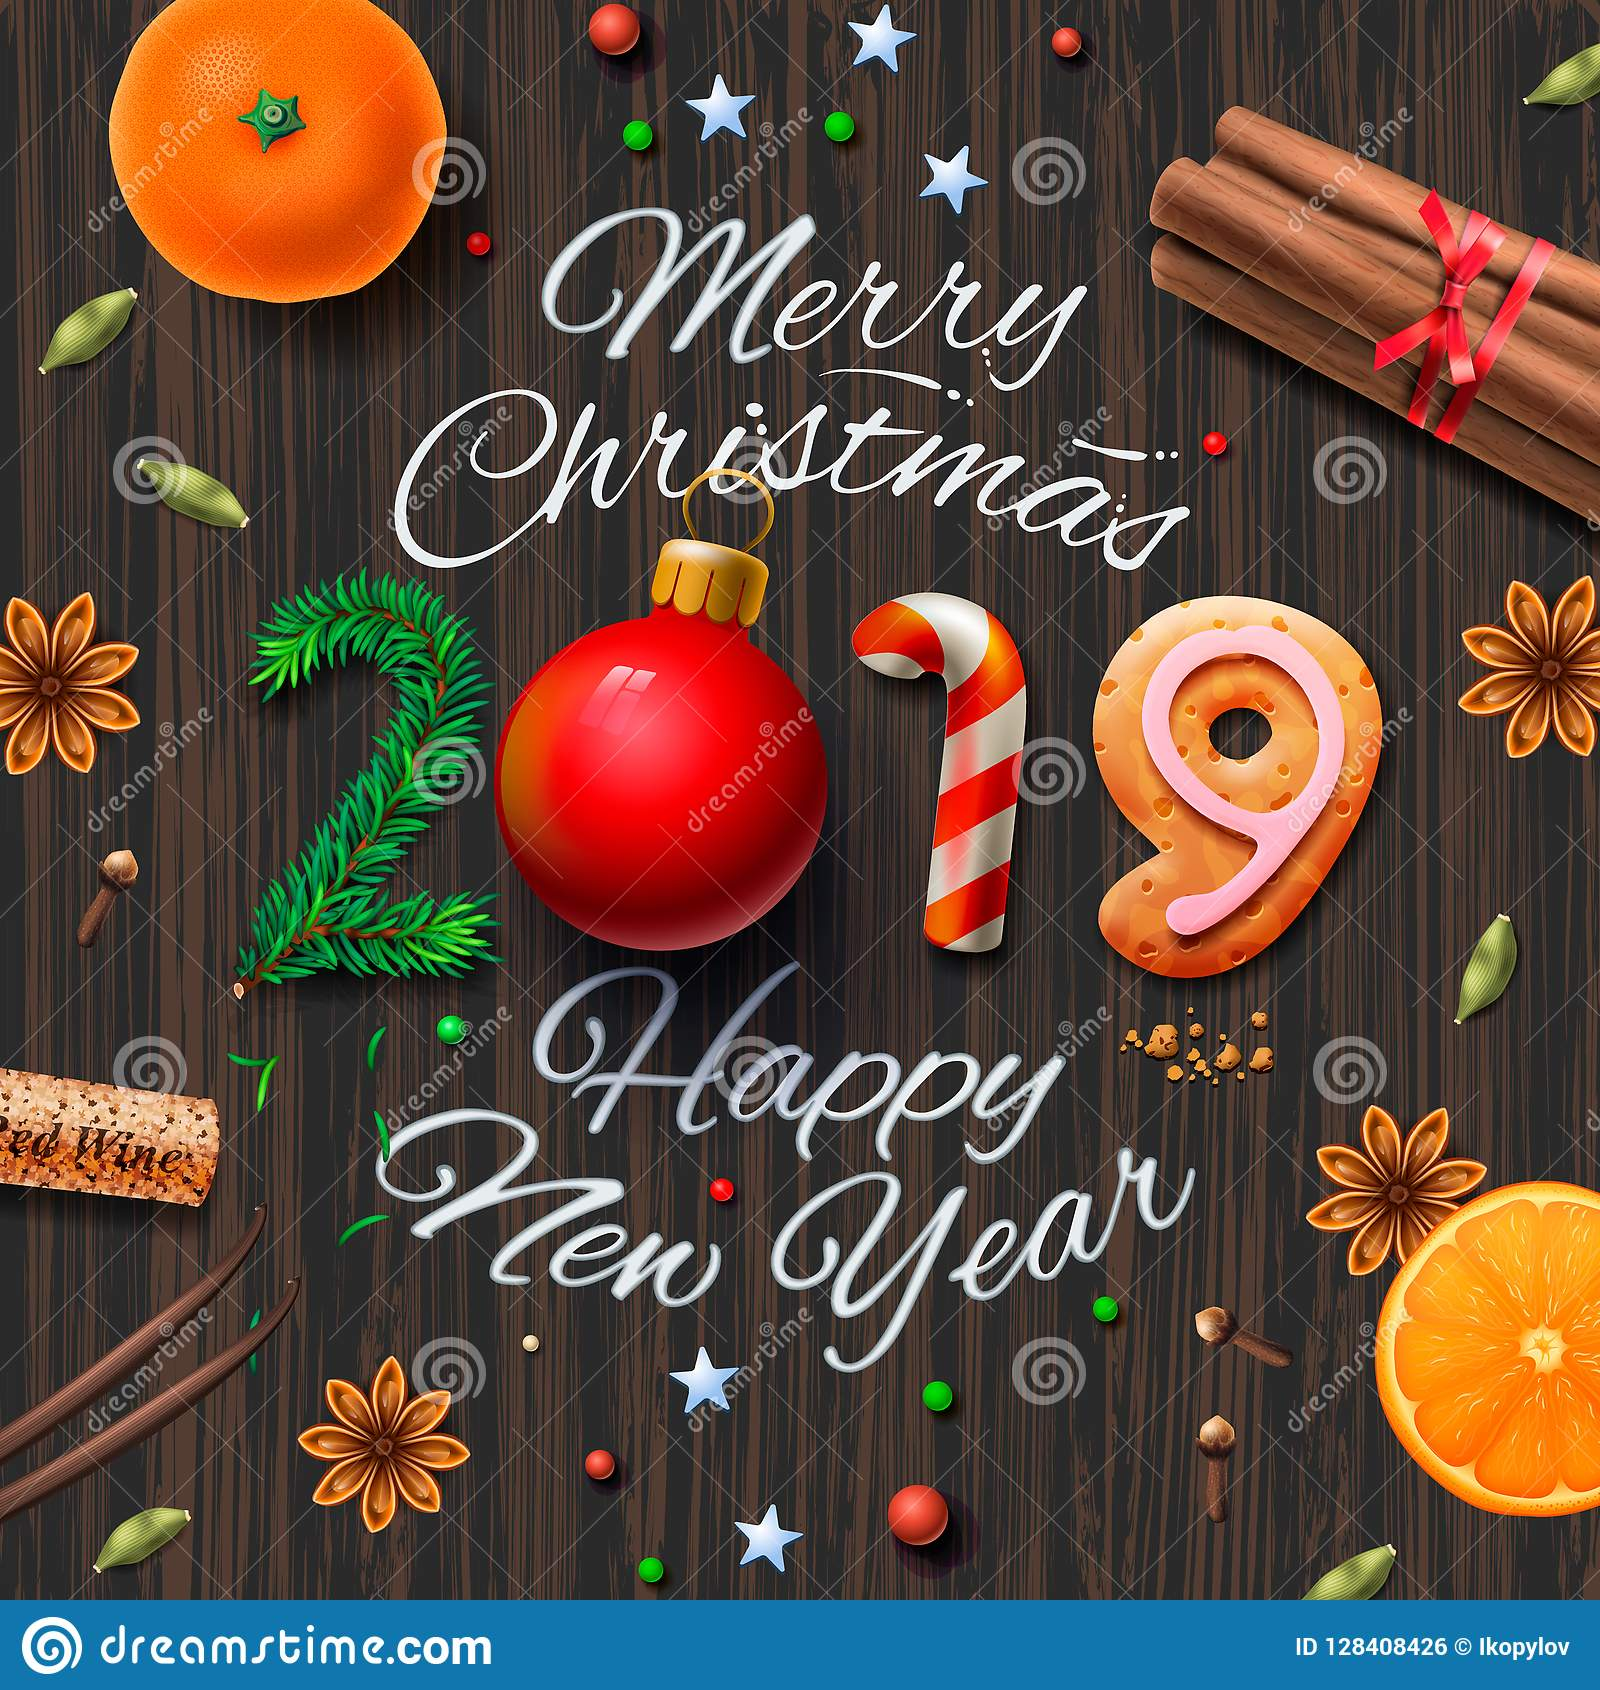 merry christmas happy new year 2019 vintage background with typography and spices for christmas